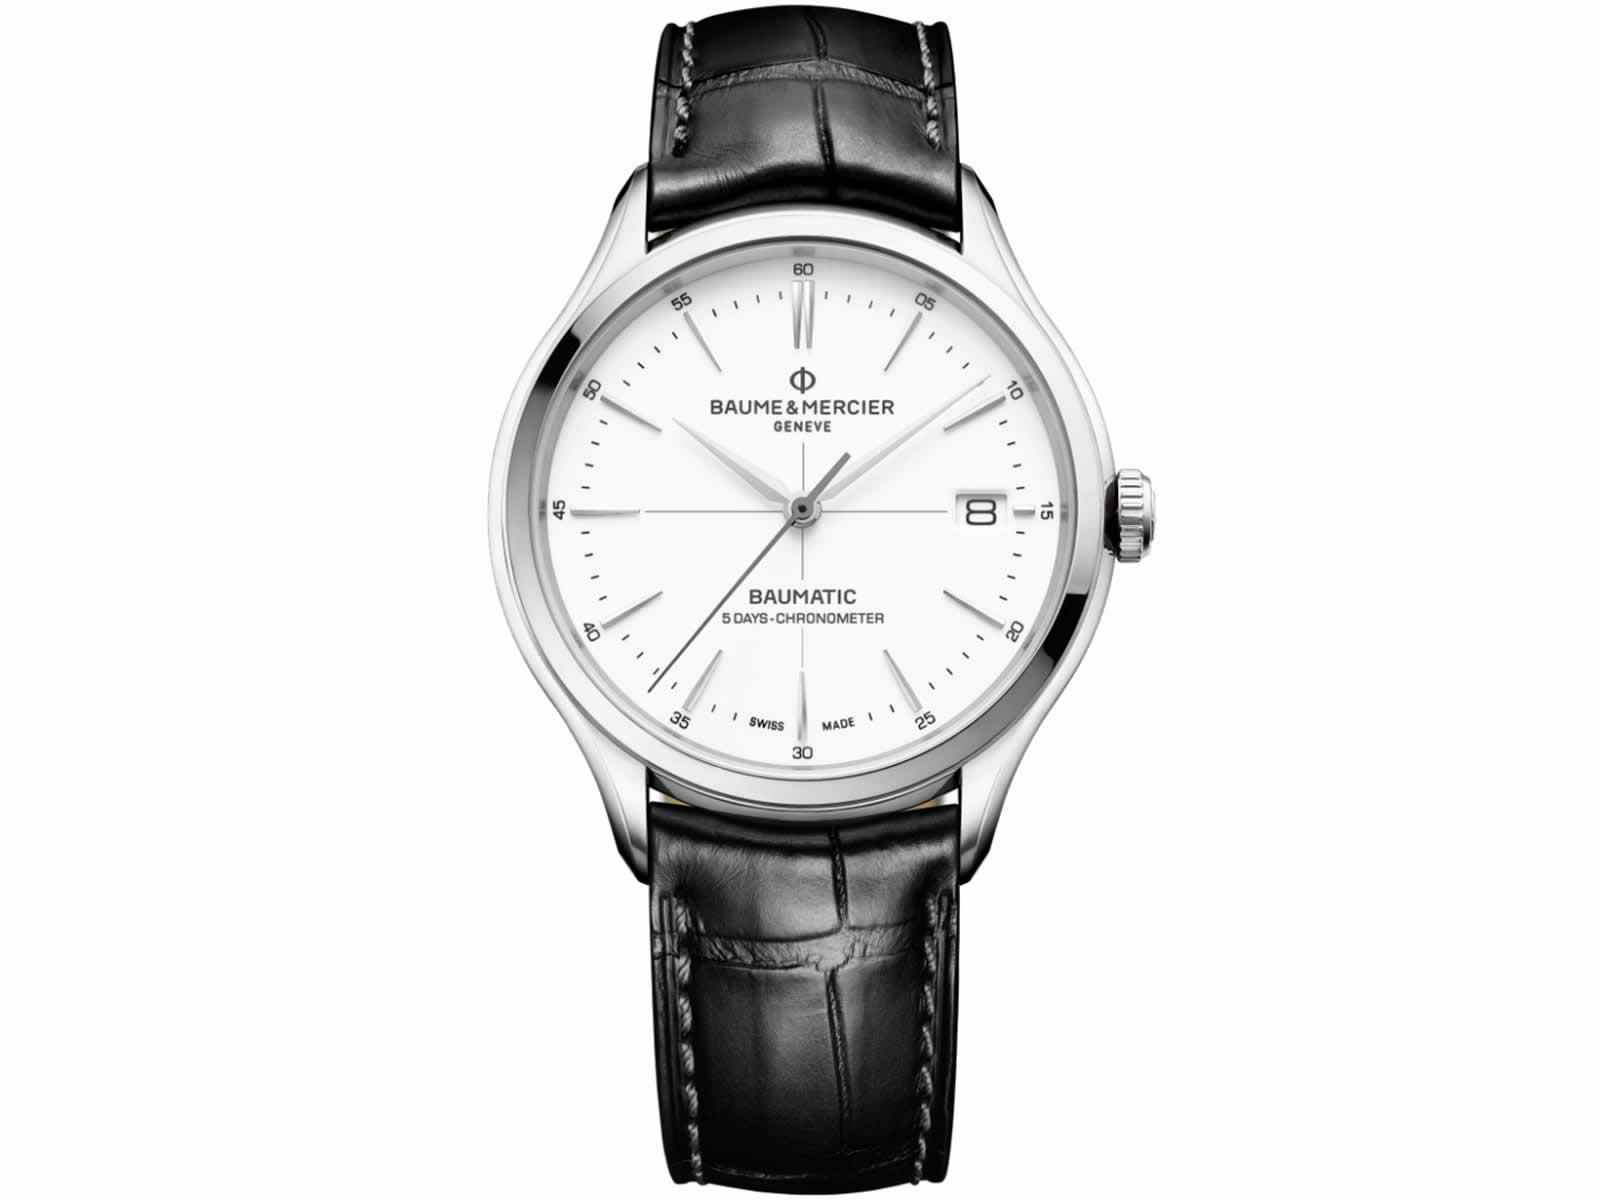 10436-Baume-Mercier-Clifton-Baumatic-Collection-Sihh2018-Black-White-Dial-Front.jpg